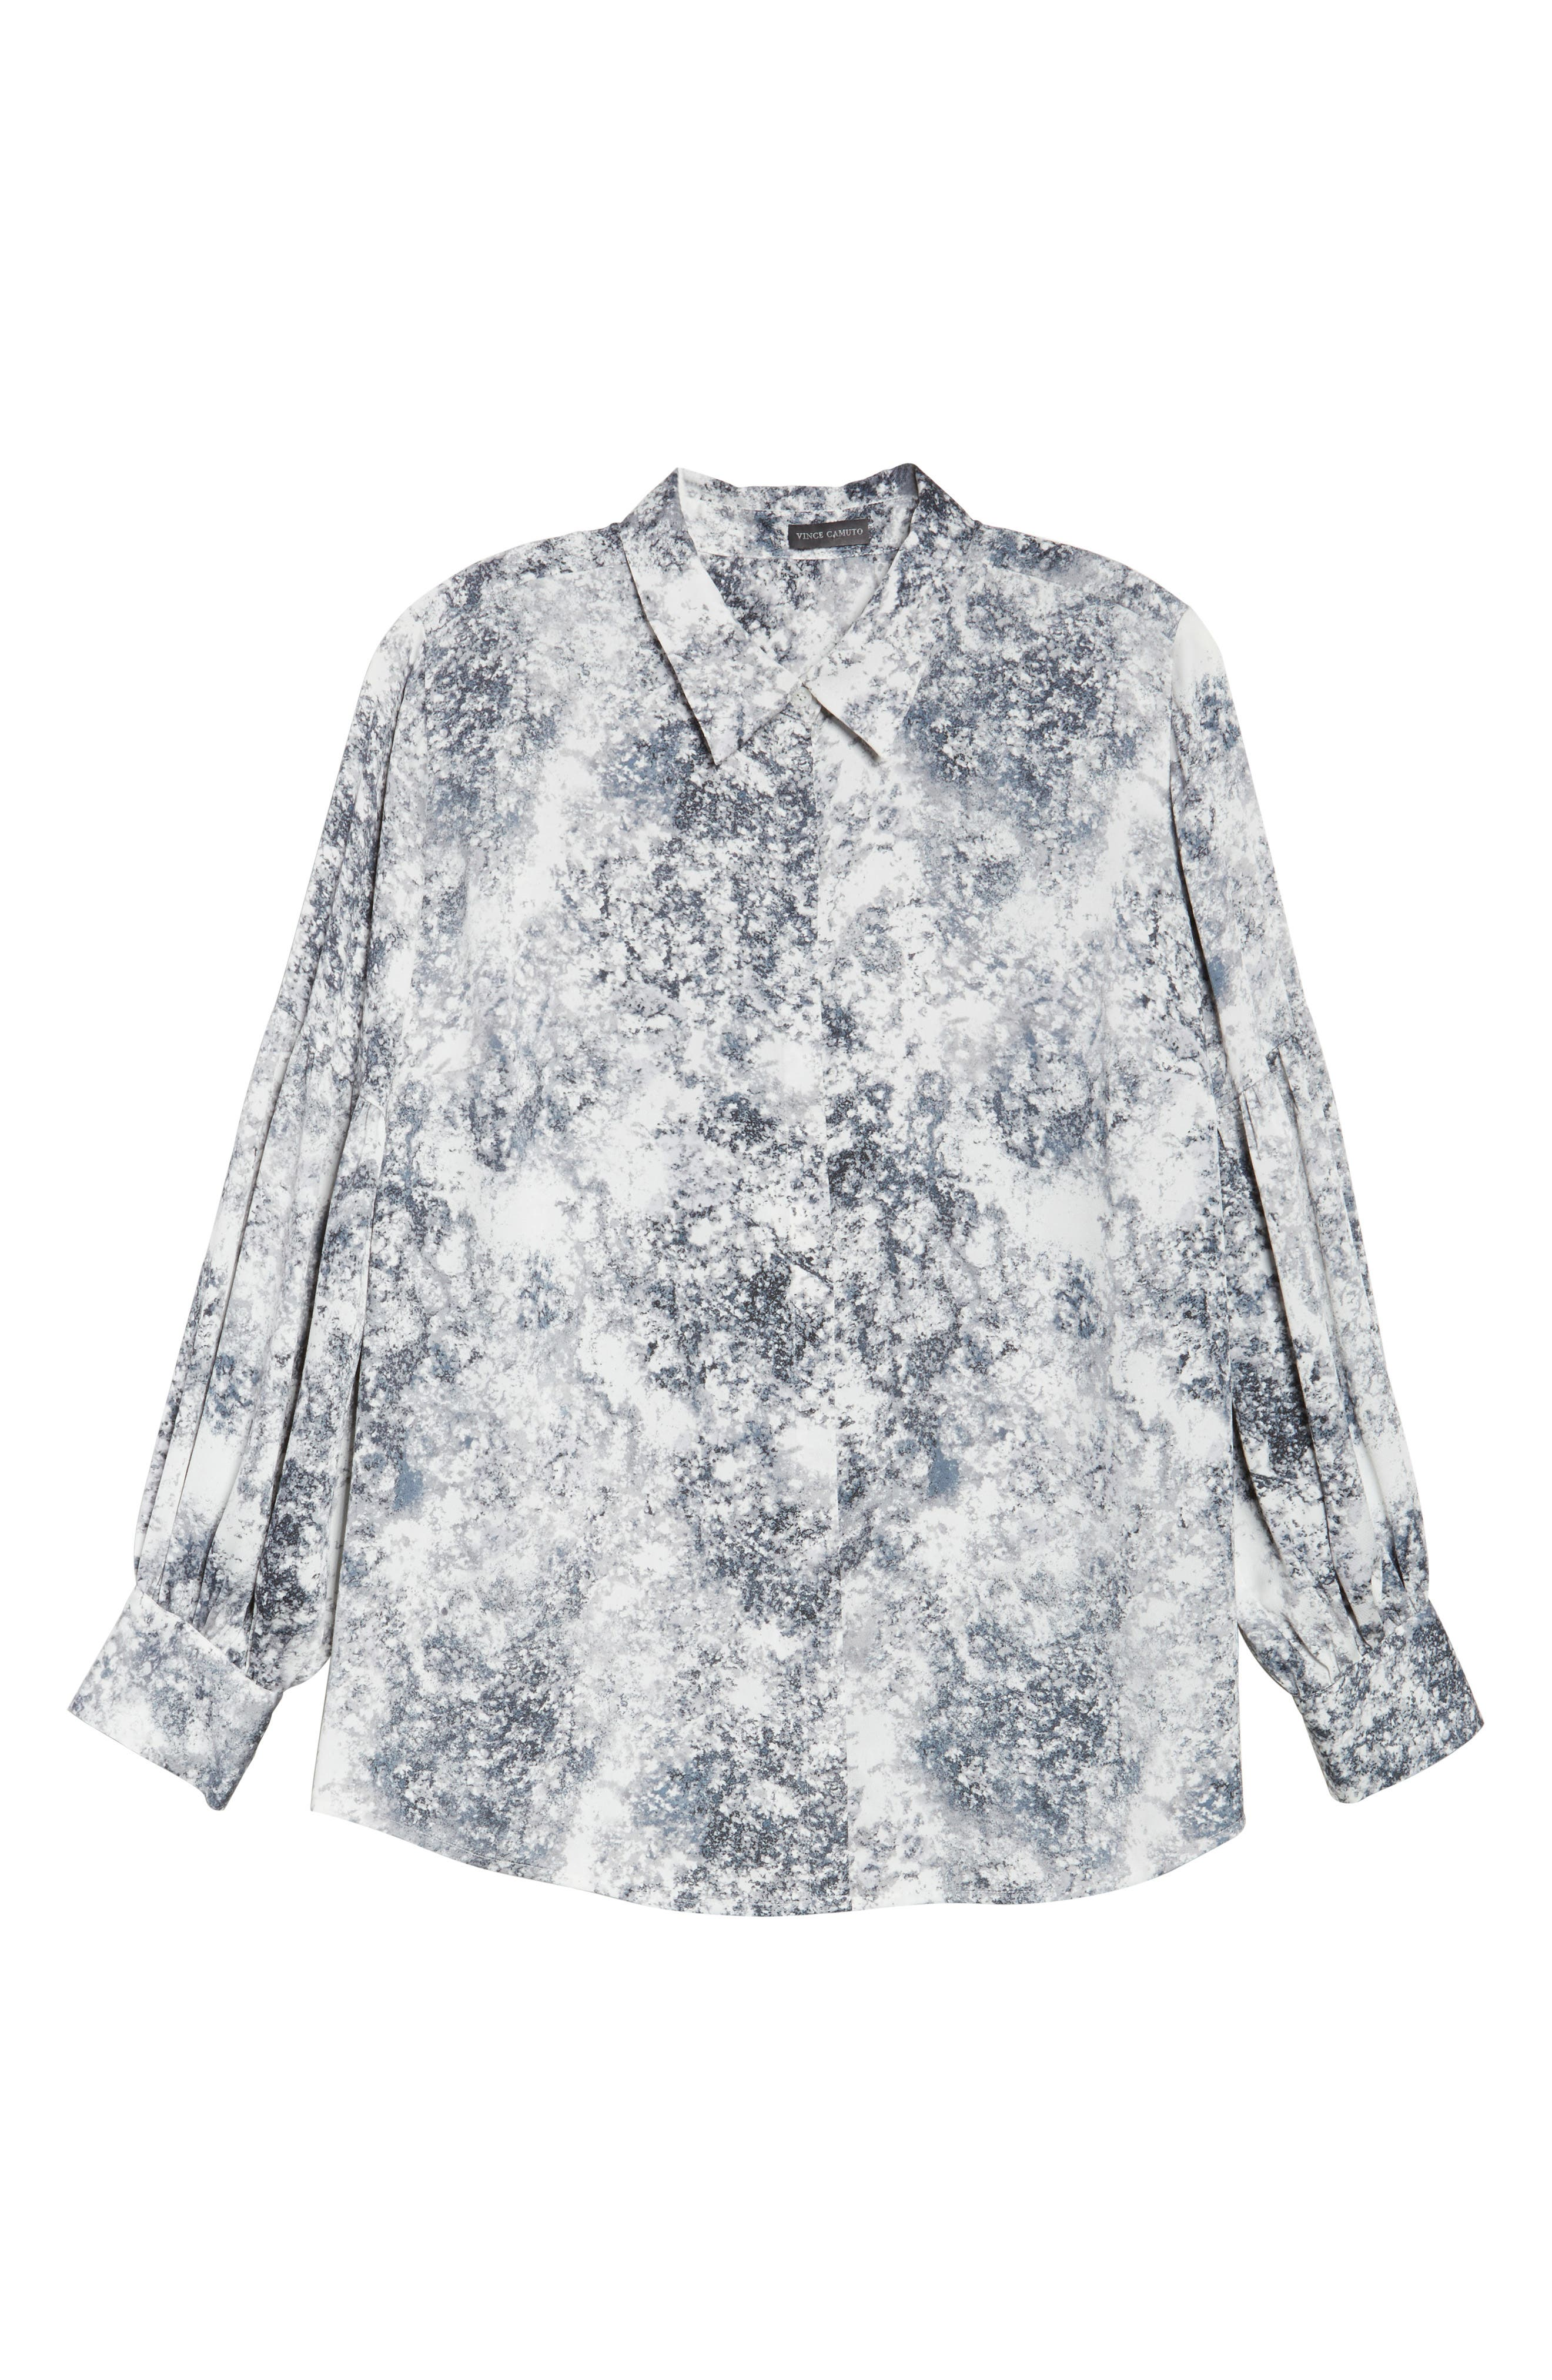 Speckled Print Blouse,                             Alternate thumbnail 6, color,                             108